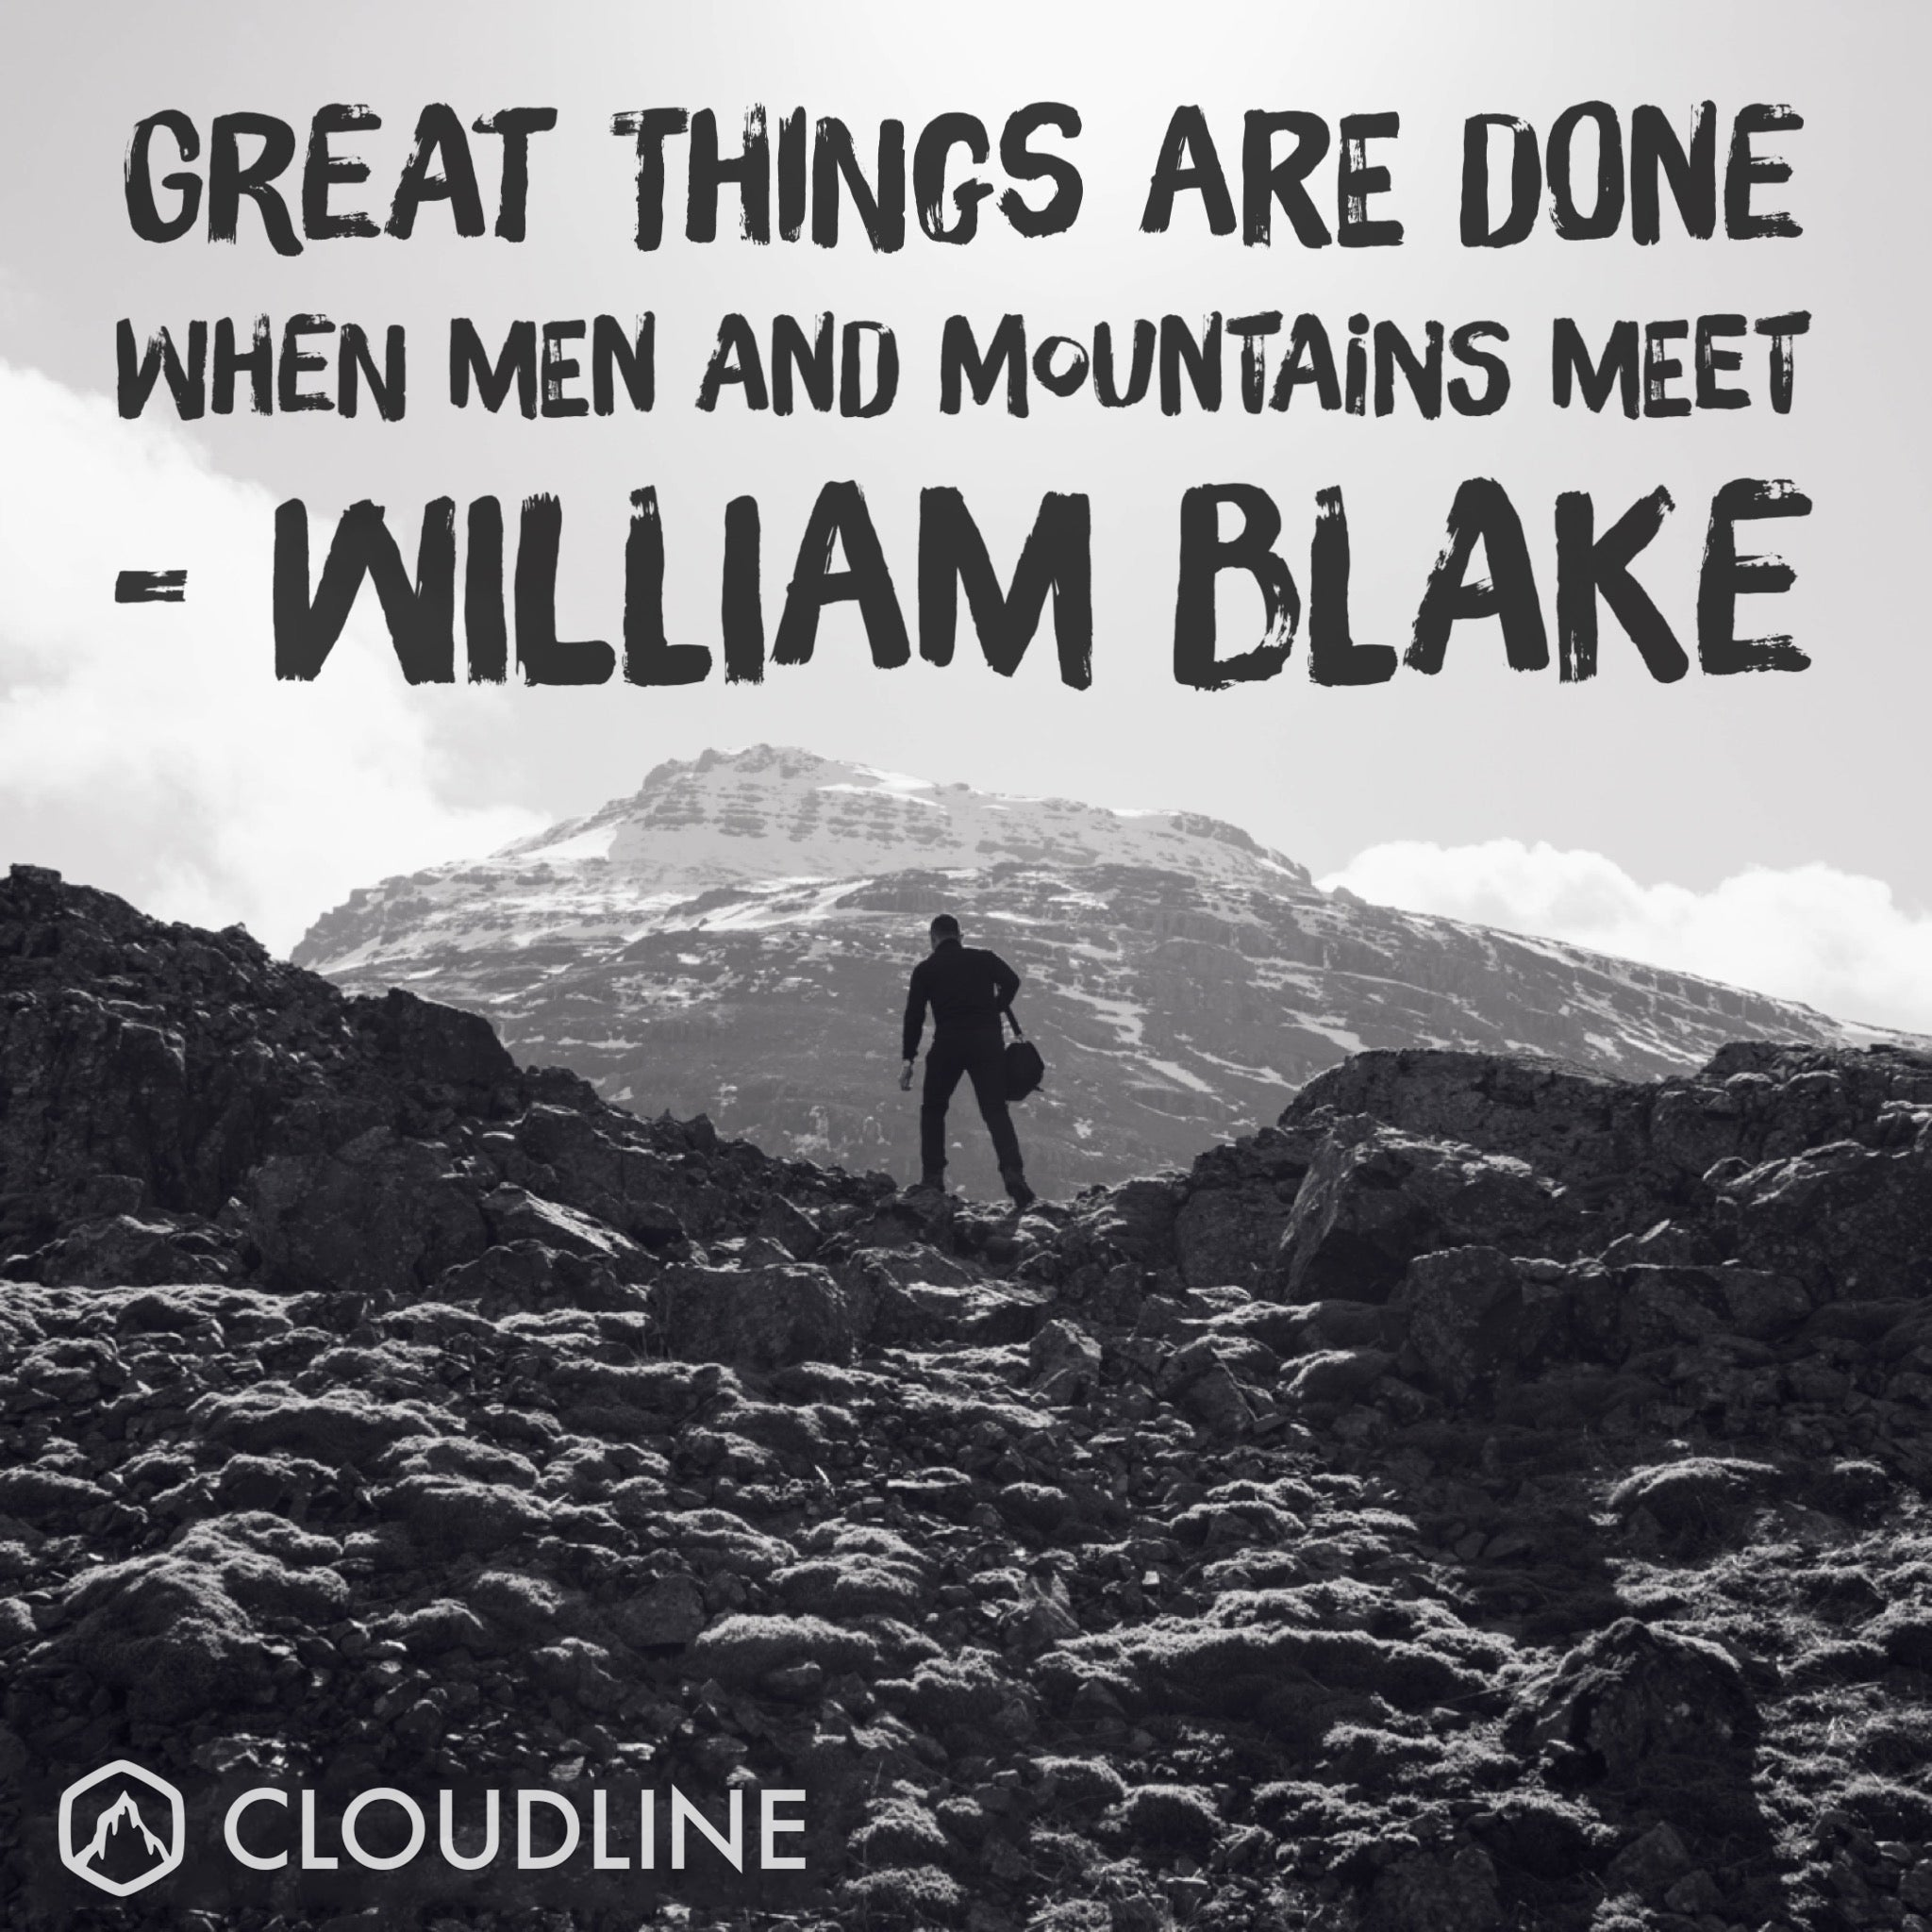 Great things are done when men and mountains meet - William Blake